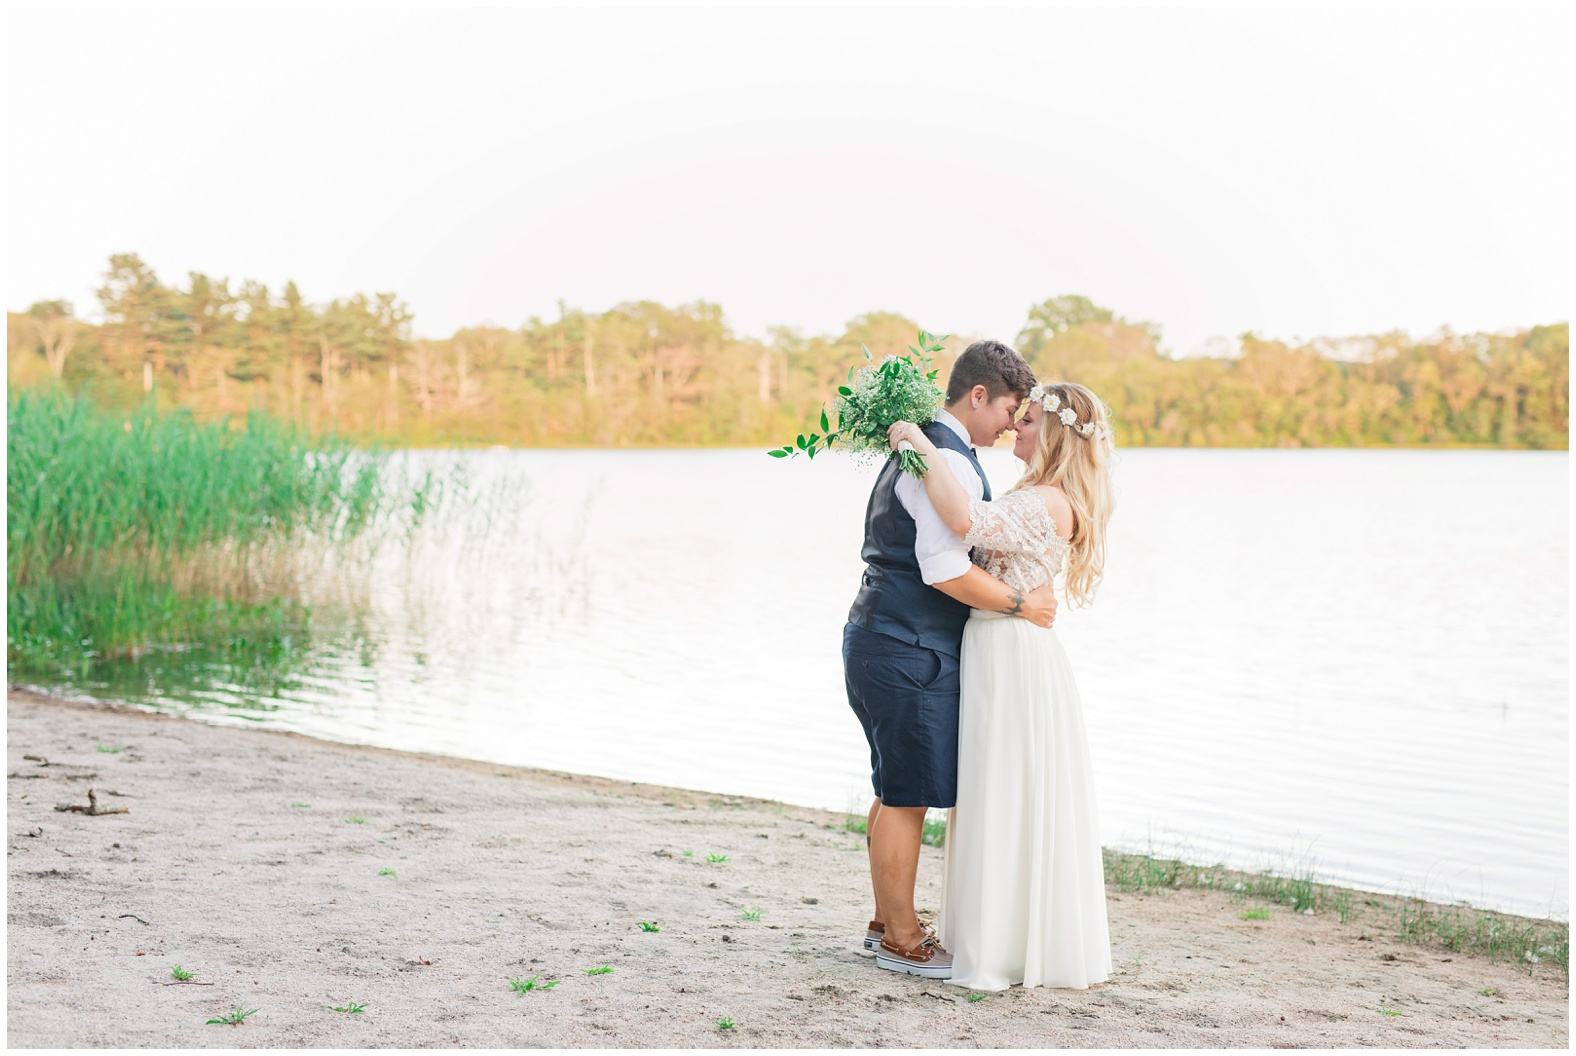 Erin + Lo: Simple, Natural, Woodsy Wedding at Camp Hoffman in South ...